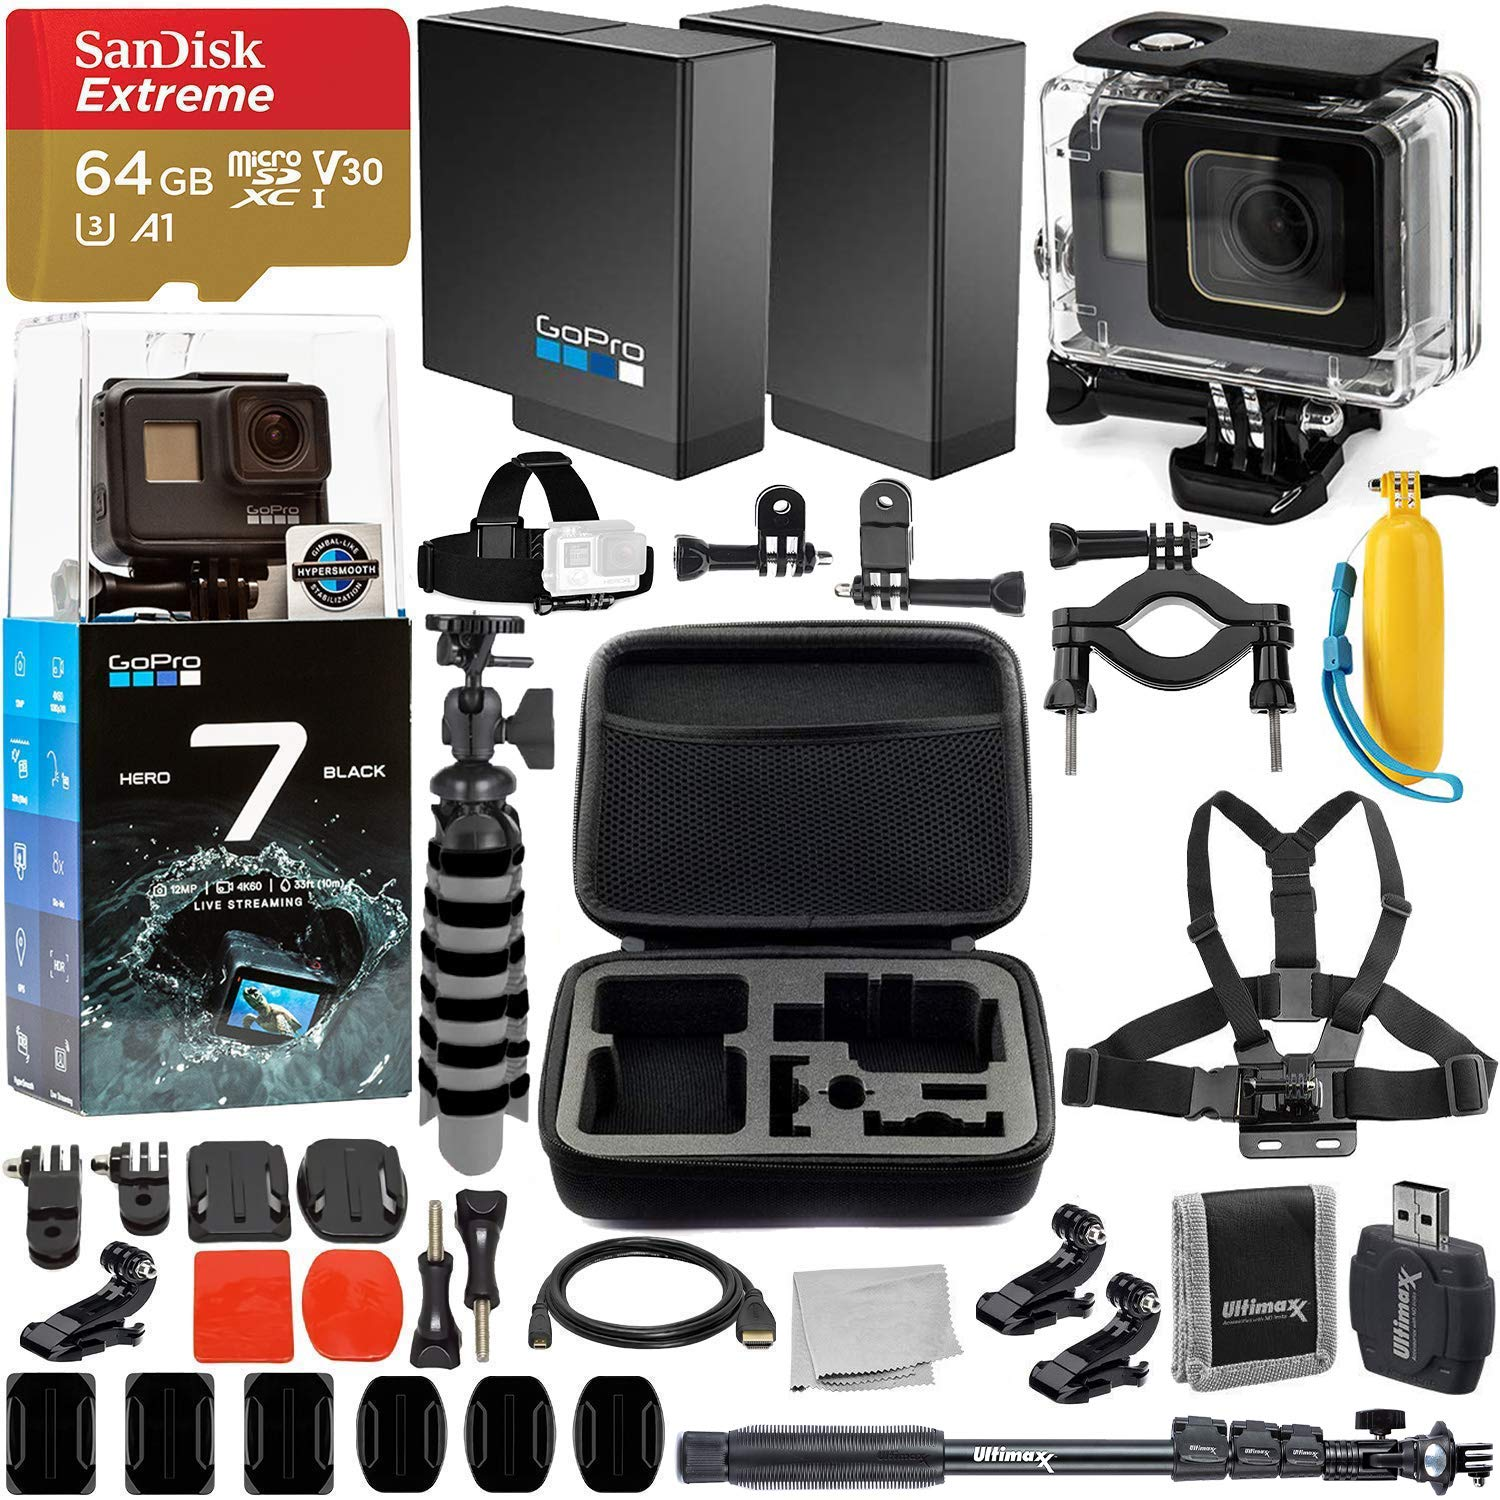 GoPro HERO7 Hero 7 Black Action Camera Super Bundle - Includes: SanDisk Extreme 64GB microSDHC Memory Card & Much More by GoPro